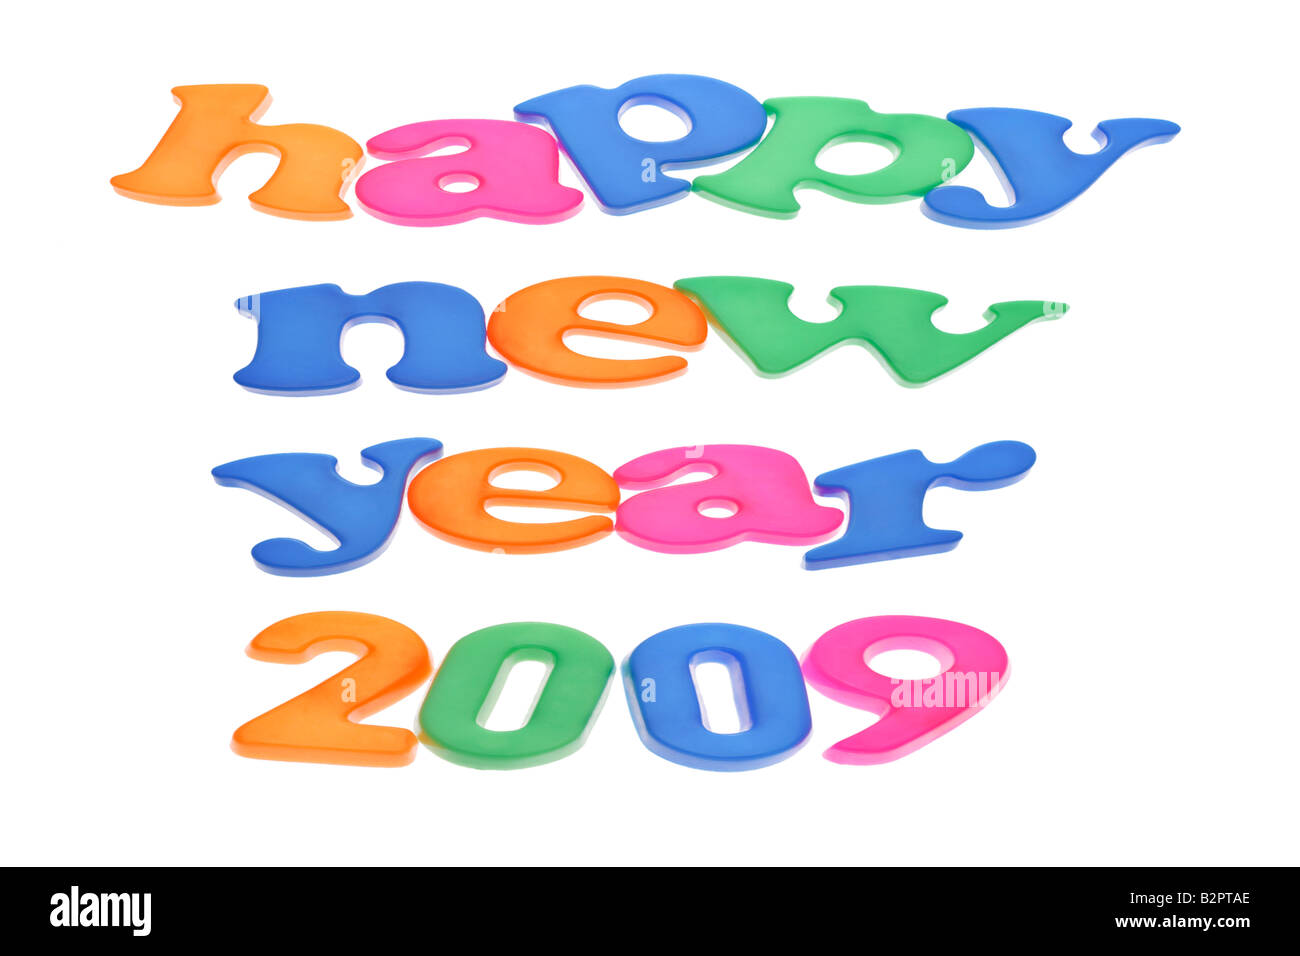 Happy New Year 2009 letter blocks on white background - Stock Image